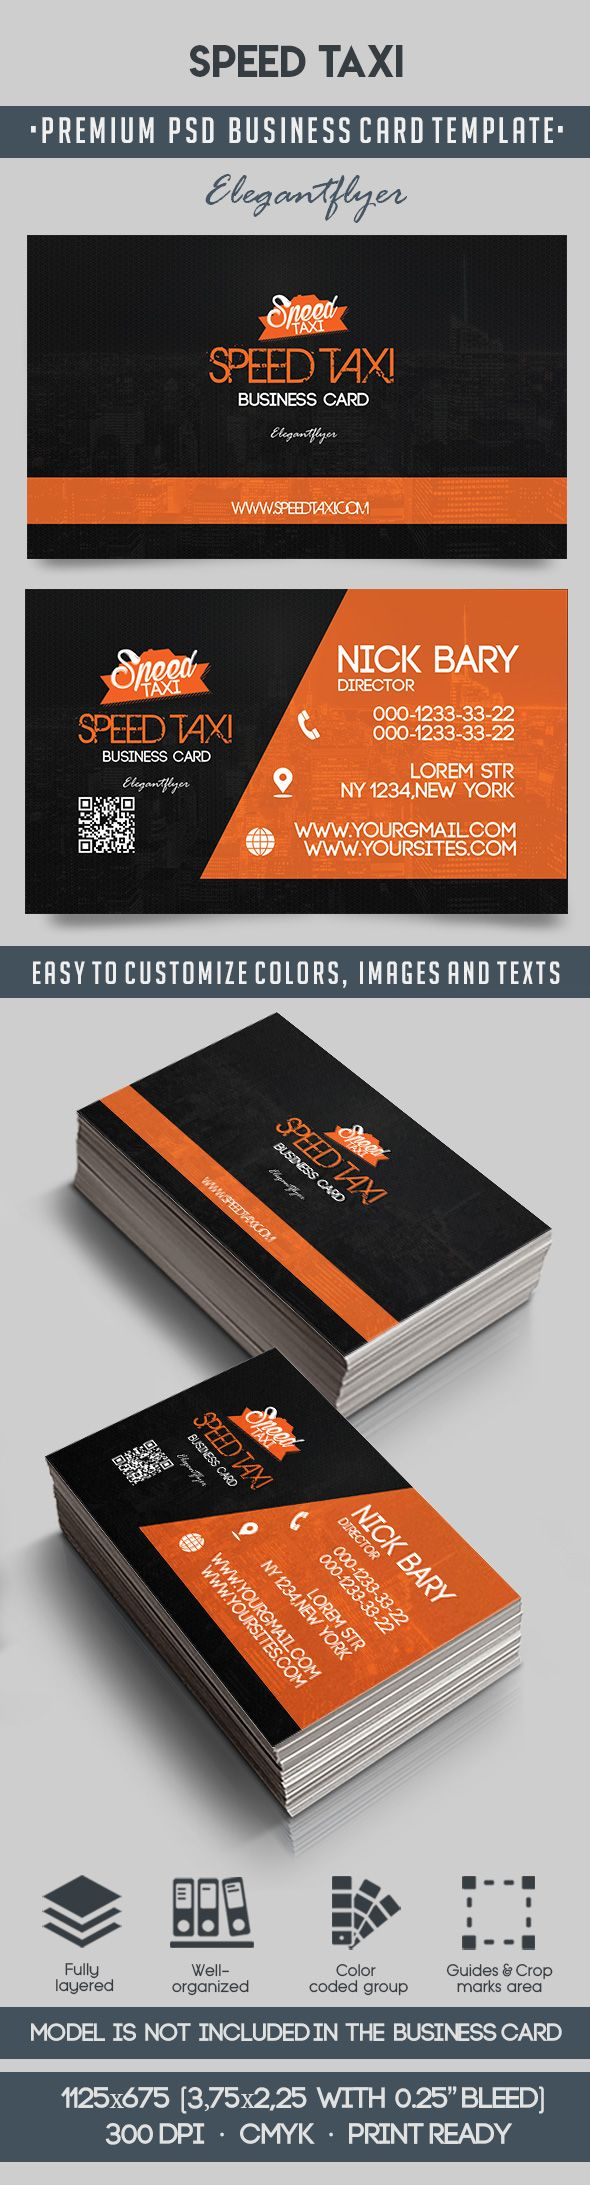 Speed Taxi – Premium Business Card Templates PSD